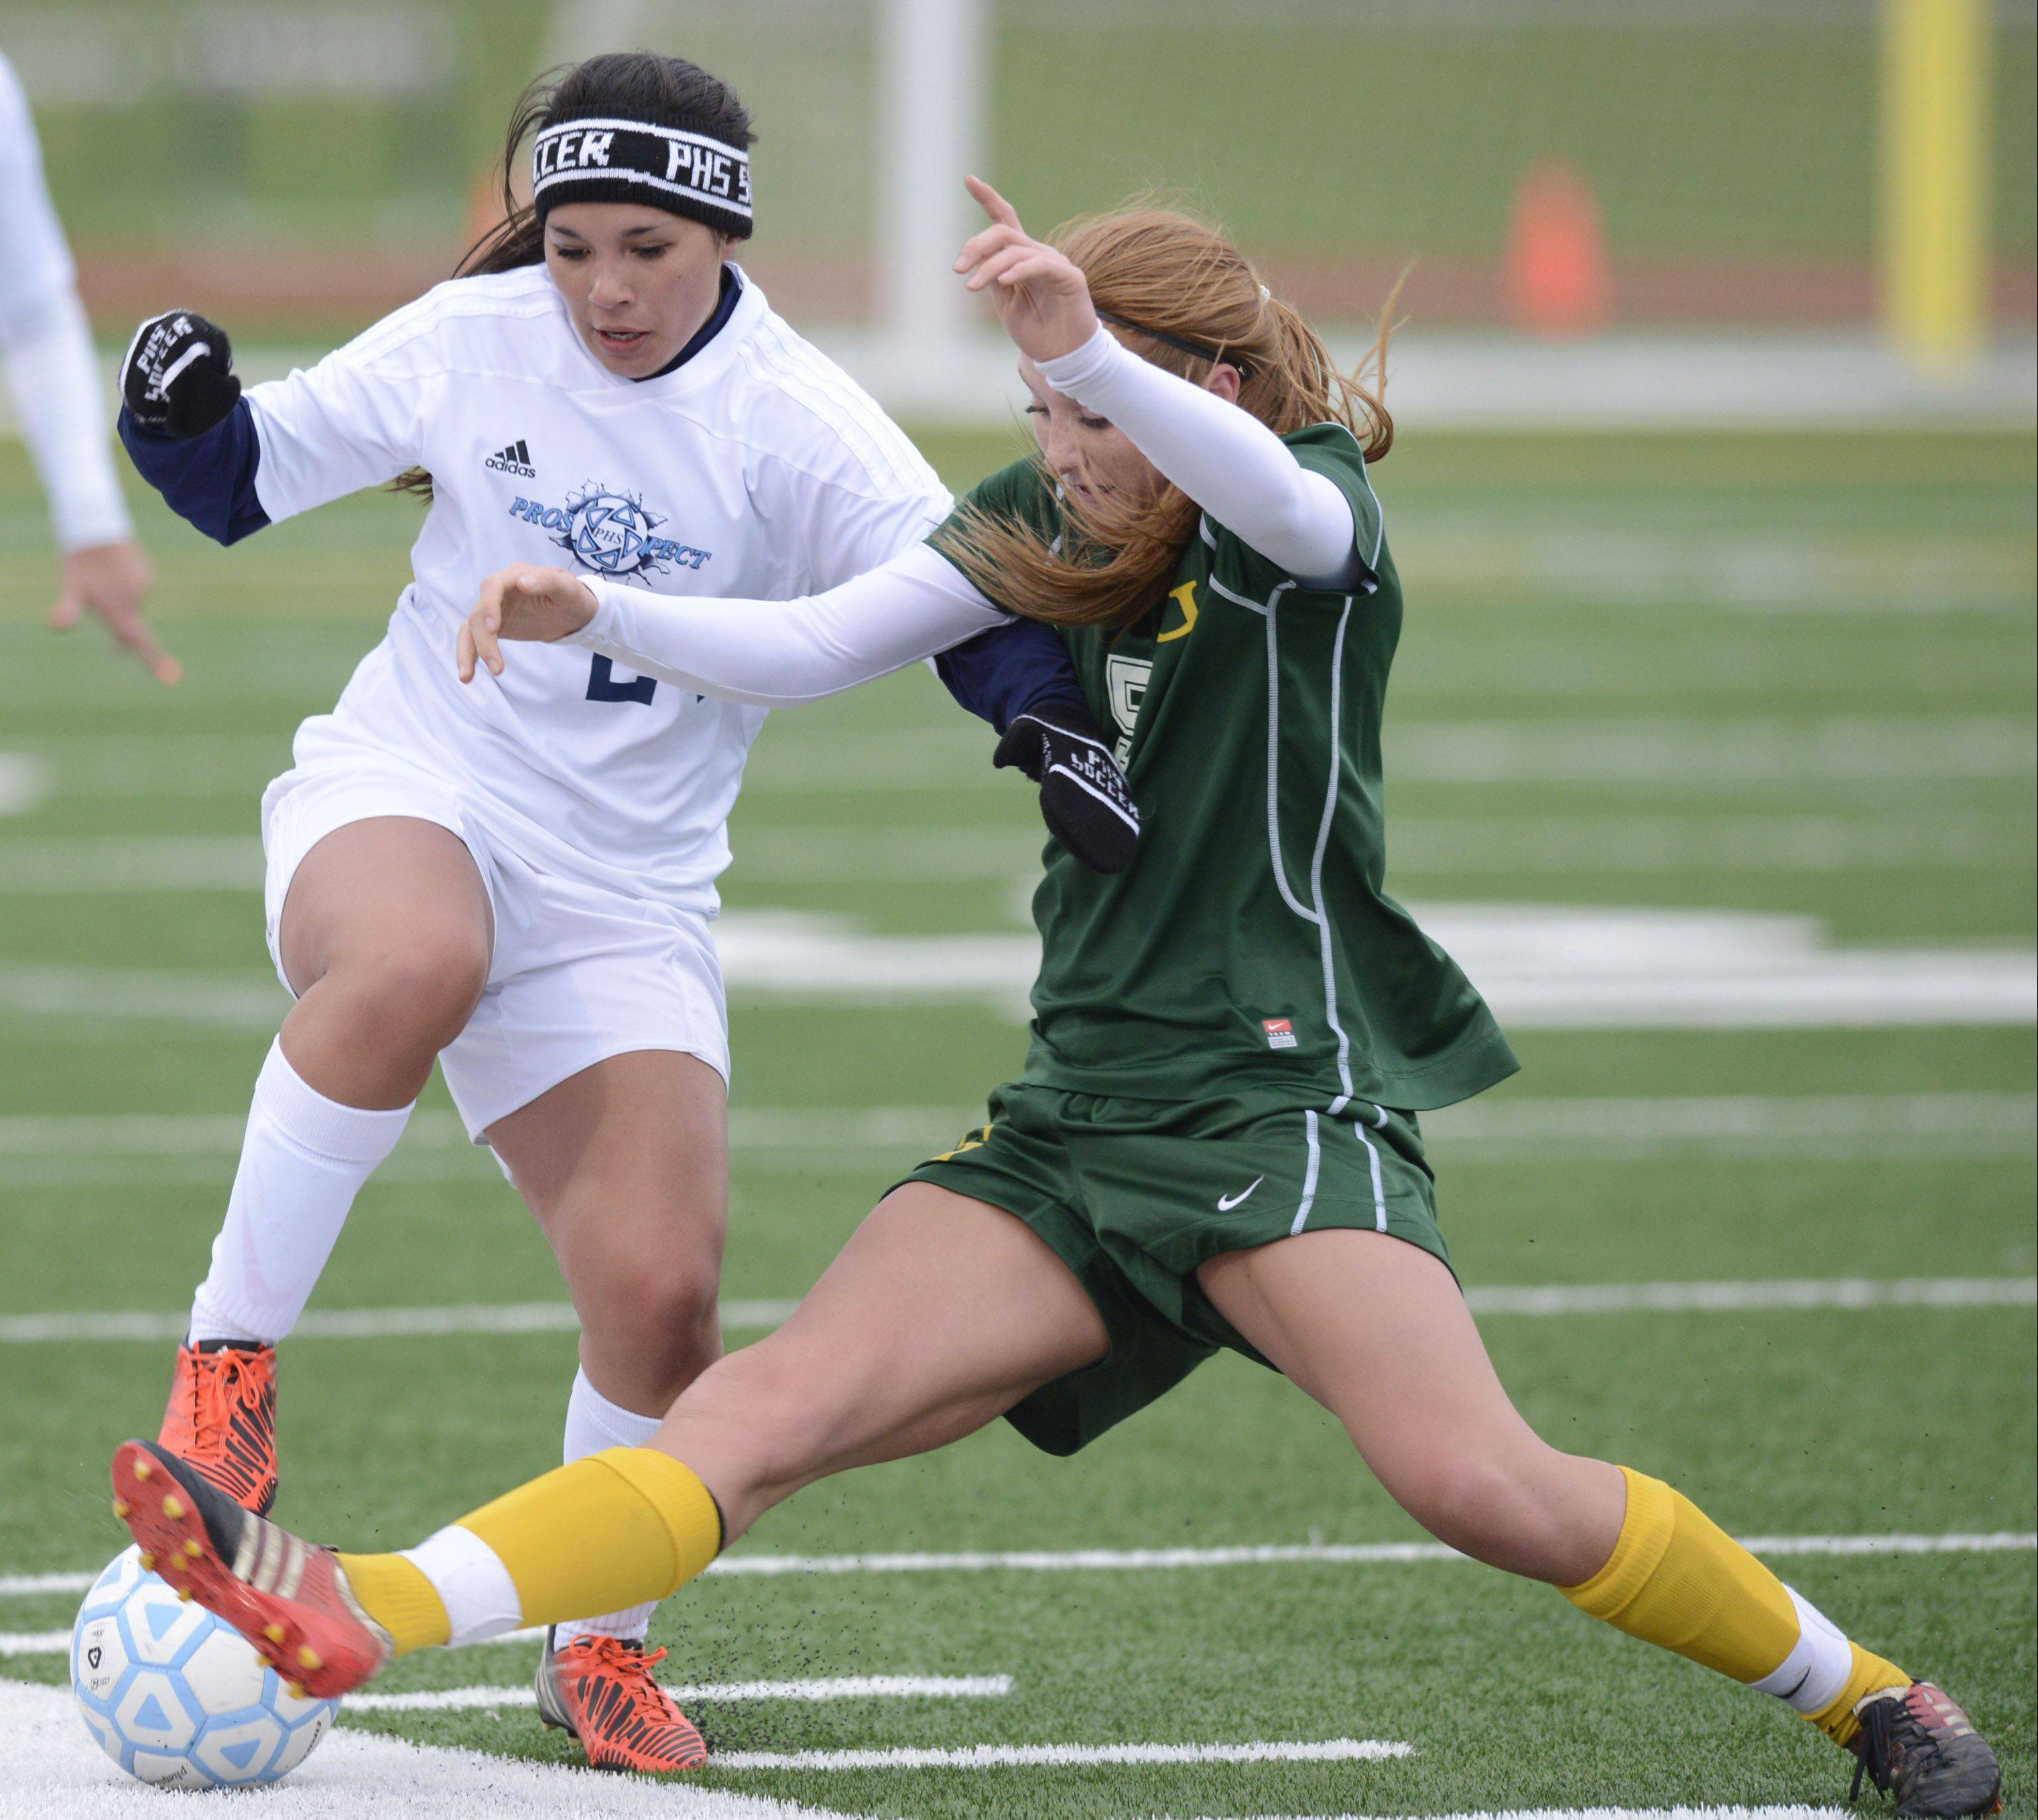 Prospect's Elena Cukurs, left, and Elk Grove's Kelly Naughton charge toward the ball Friday at Prospect.